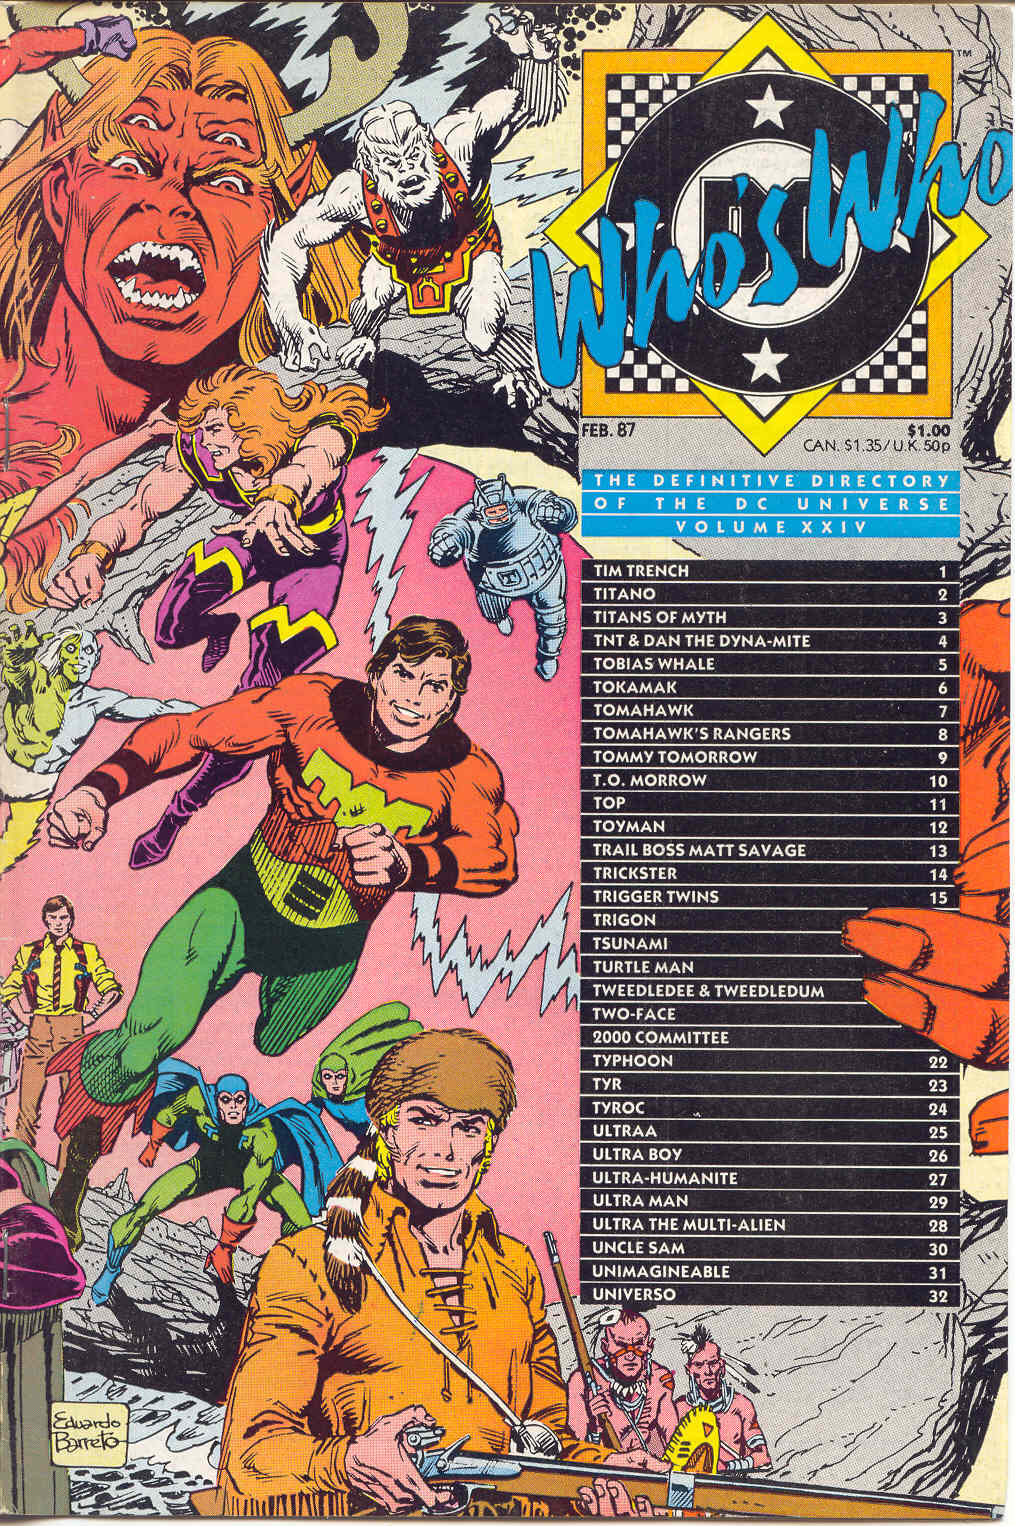 Whos Who: The Definitive Directory of the DC Universe 24 Page 1